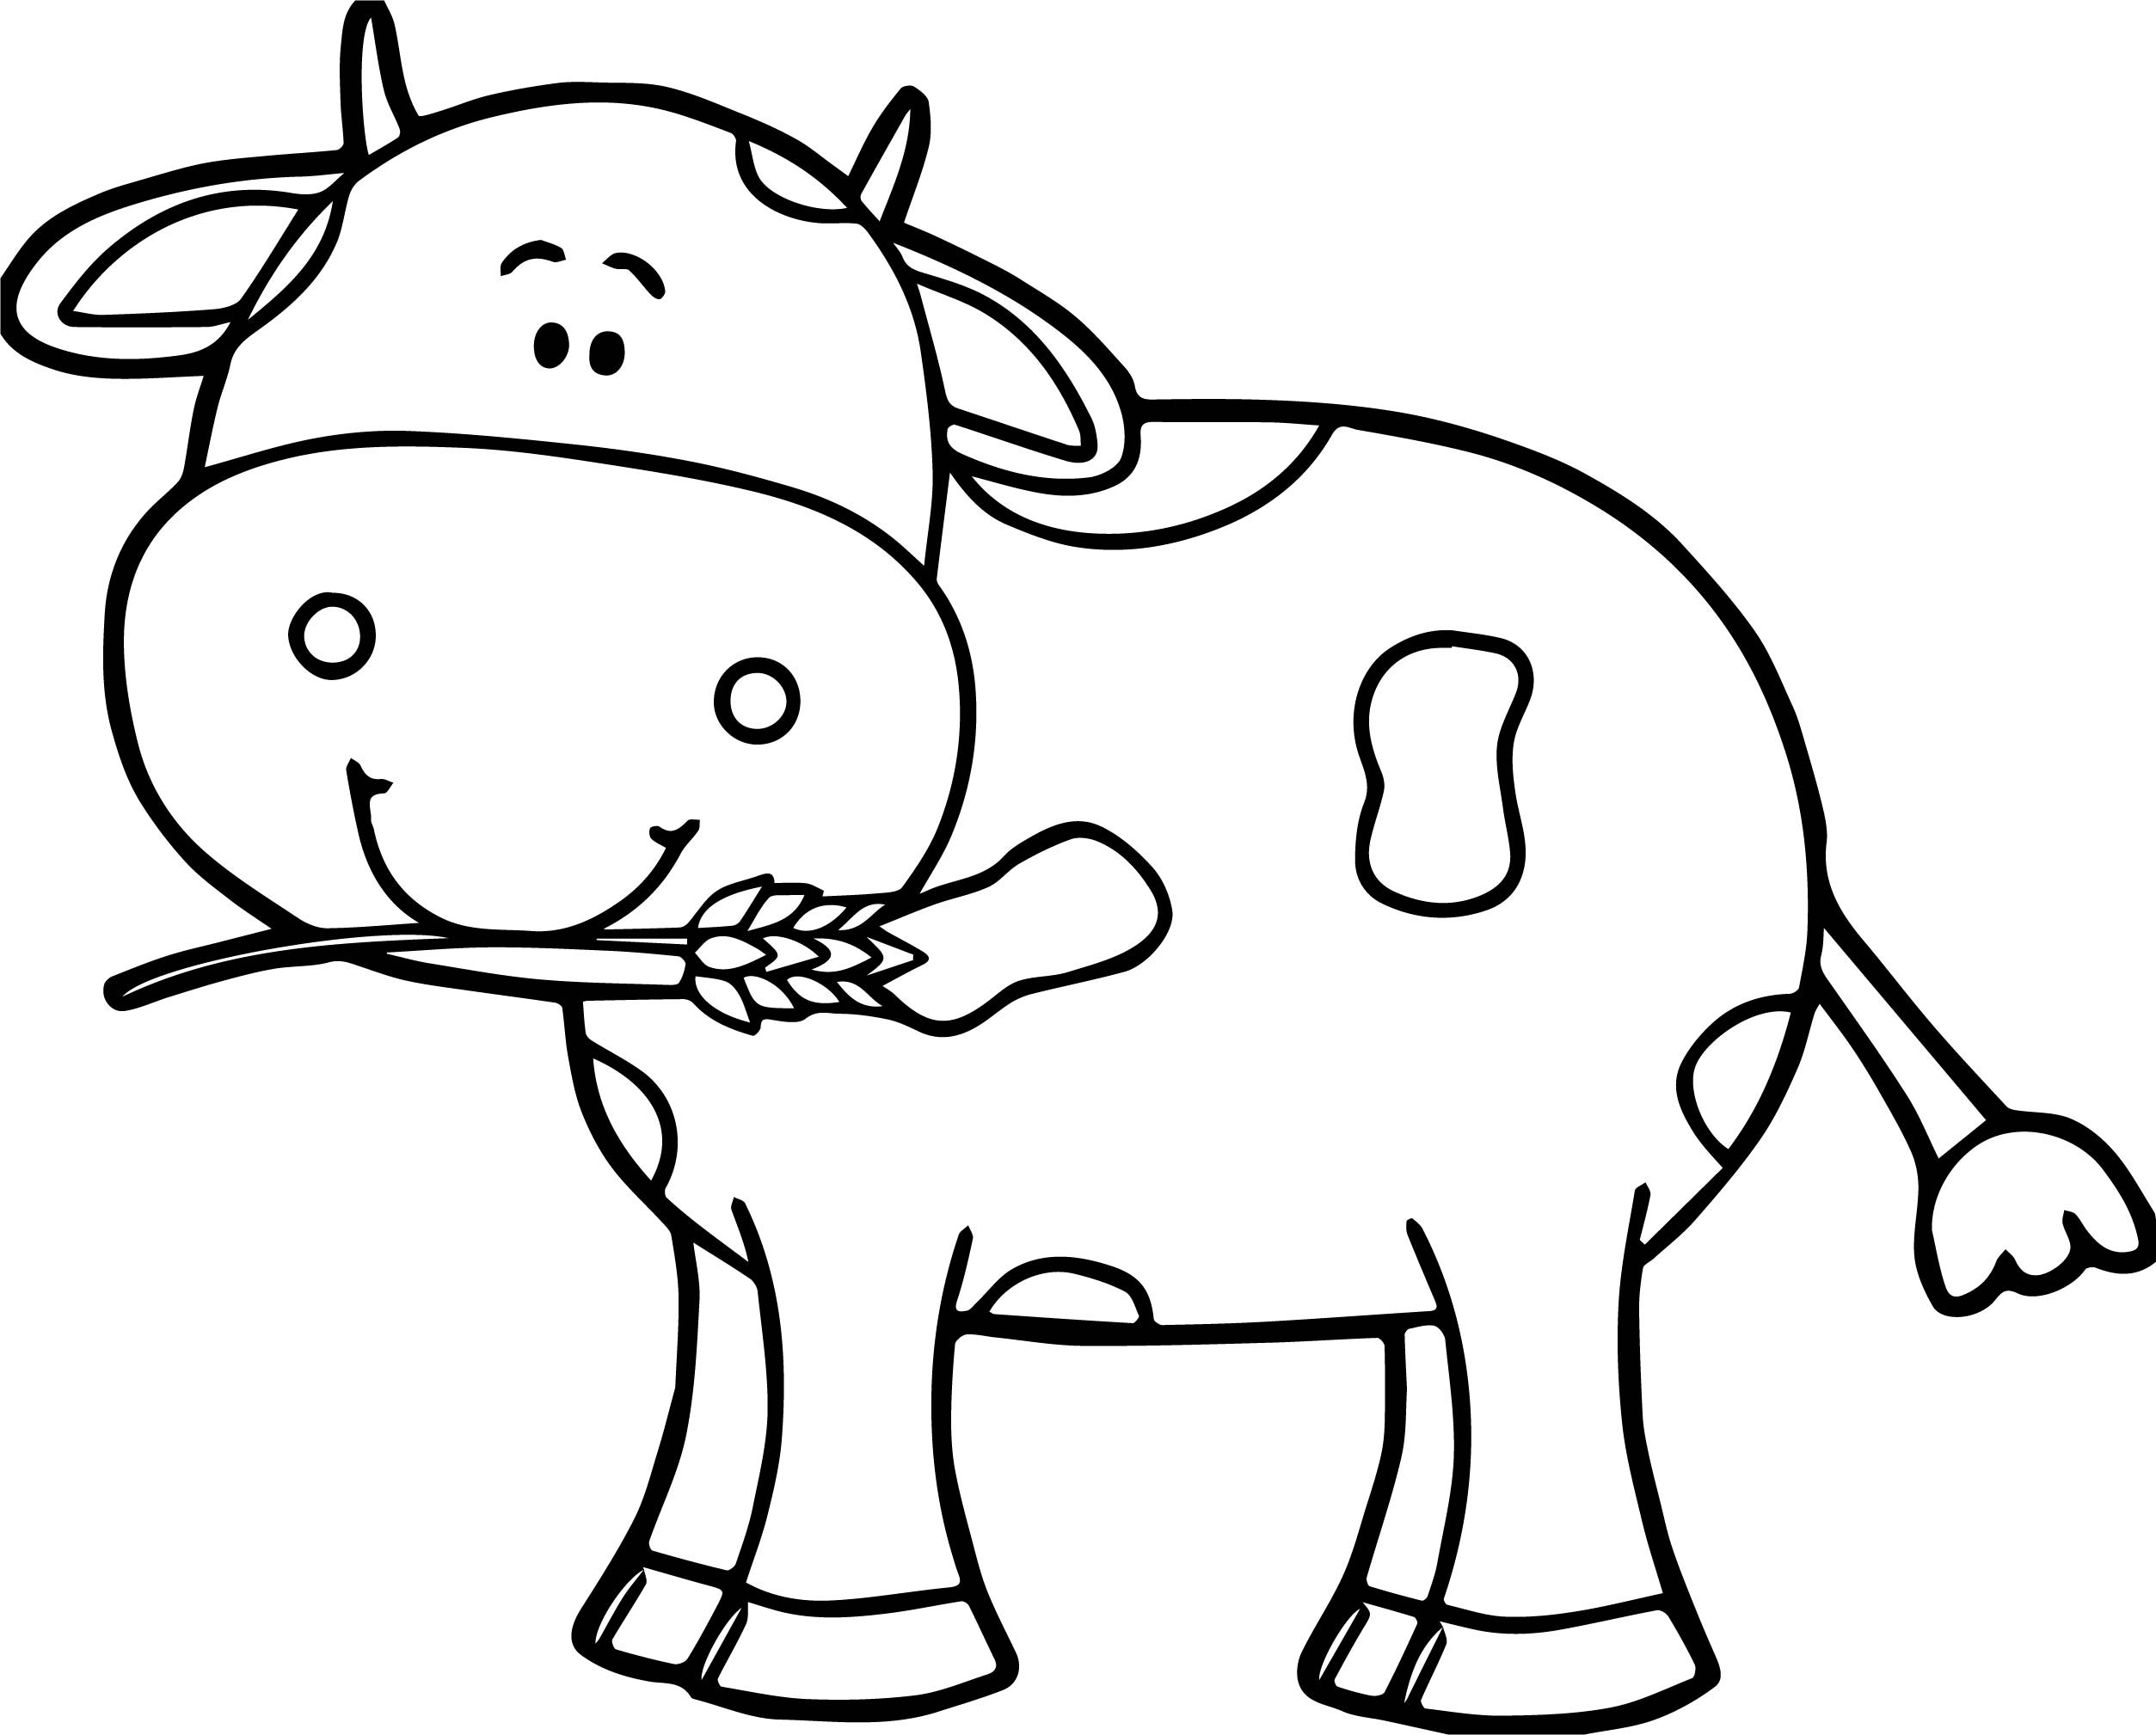 picture of a cow to colour printable cow coloring pages coloring pages ideas to picture of colour cow a